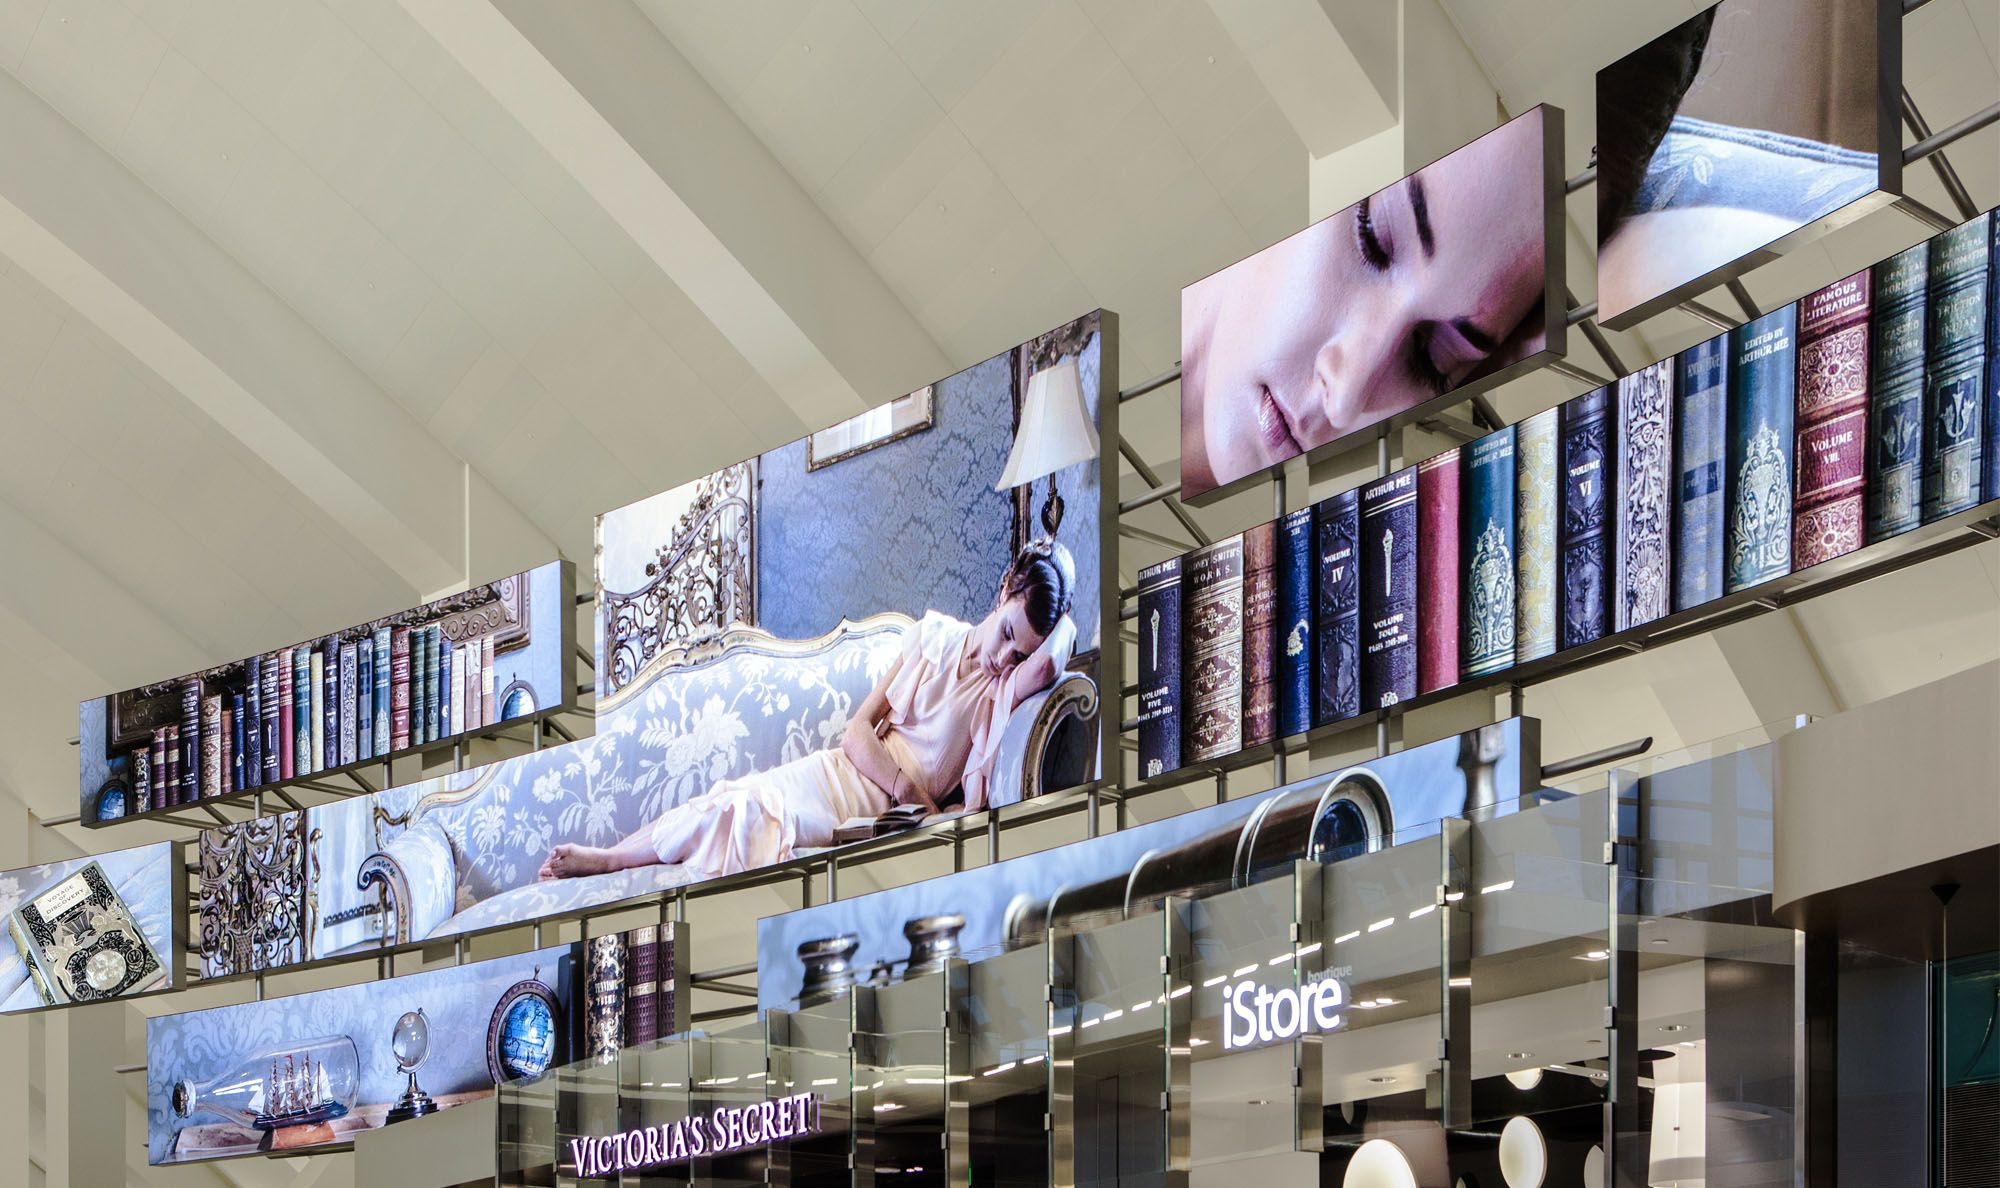 Lax Los Angeles International Airport Moment Factory Project Interactive Design Digital Signage In This Moment